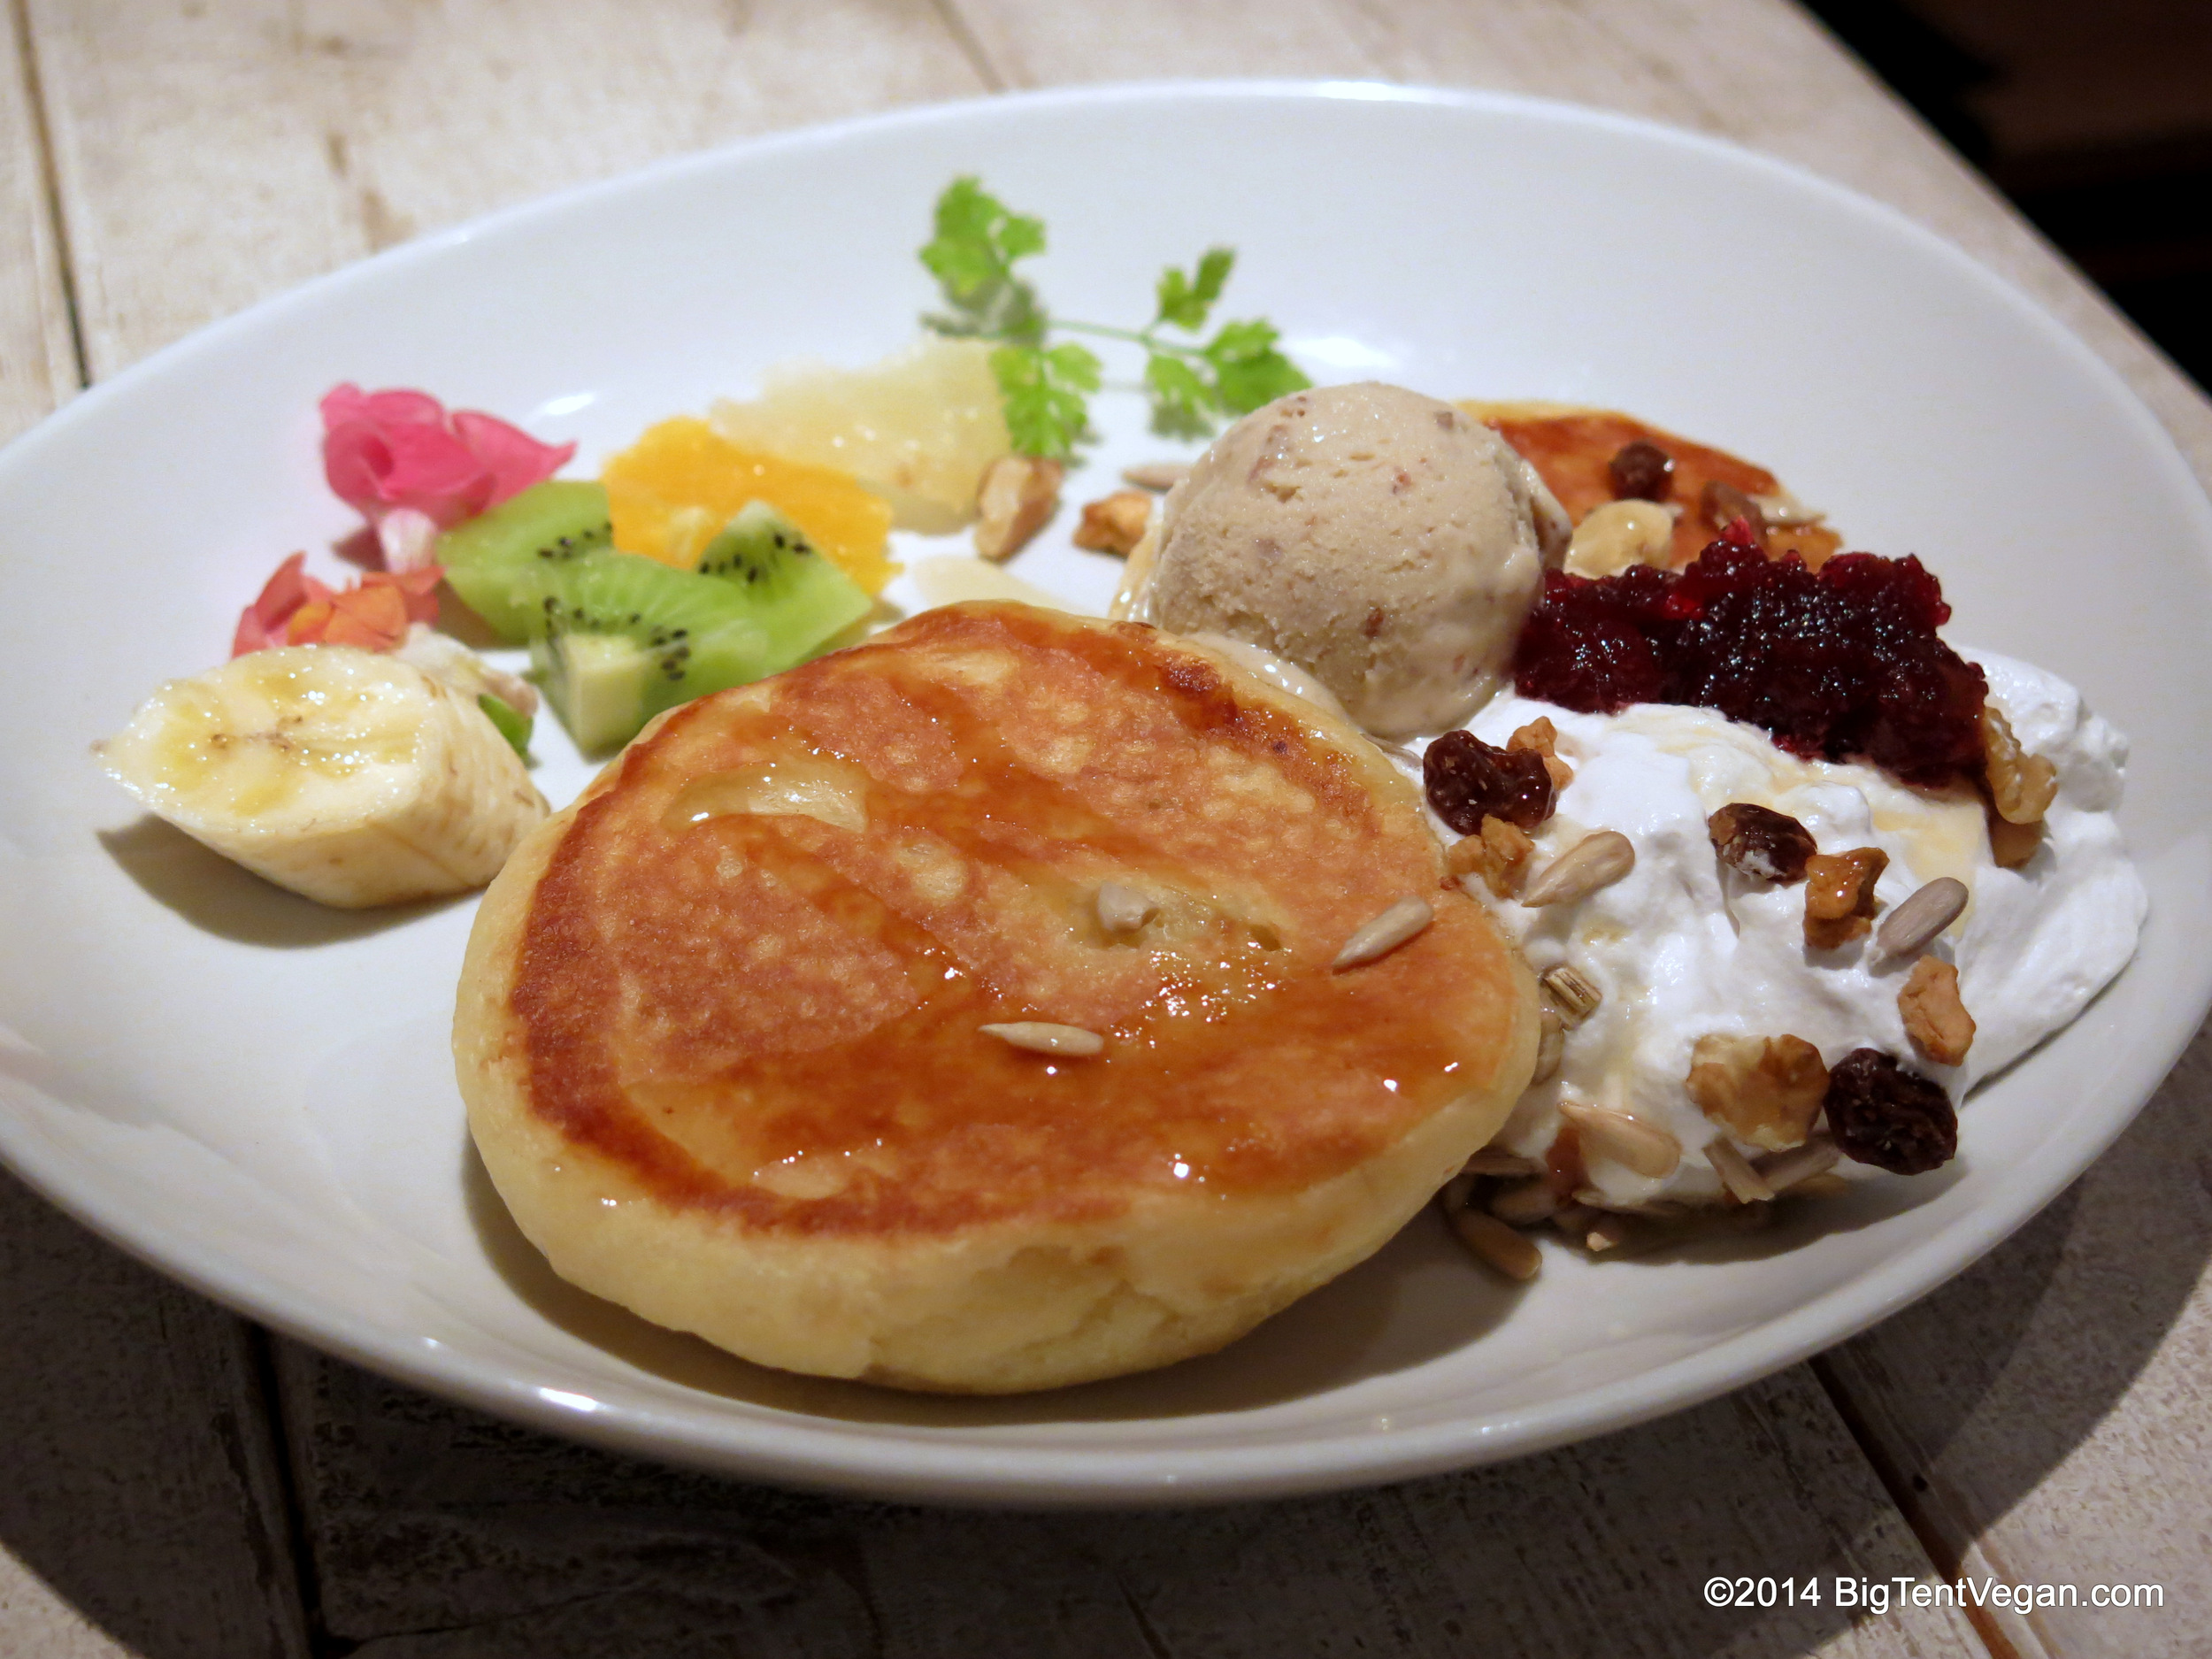 Heavenly Pancake Dessert at Ain Soph Journey (100% vegan restaurant) in Tokyo, Japan